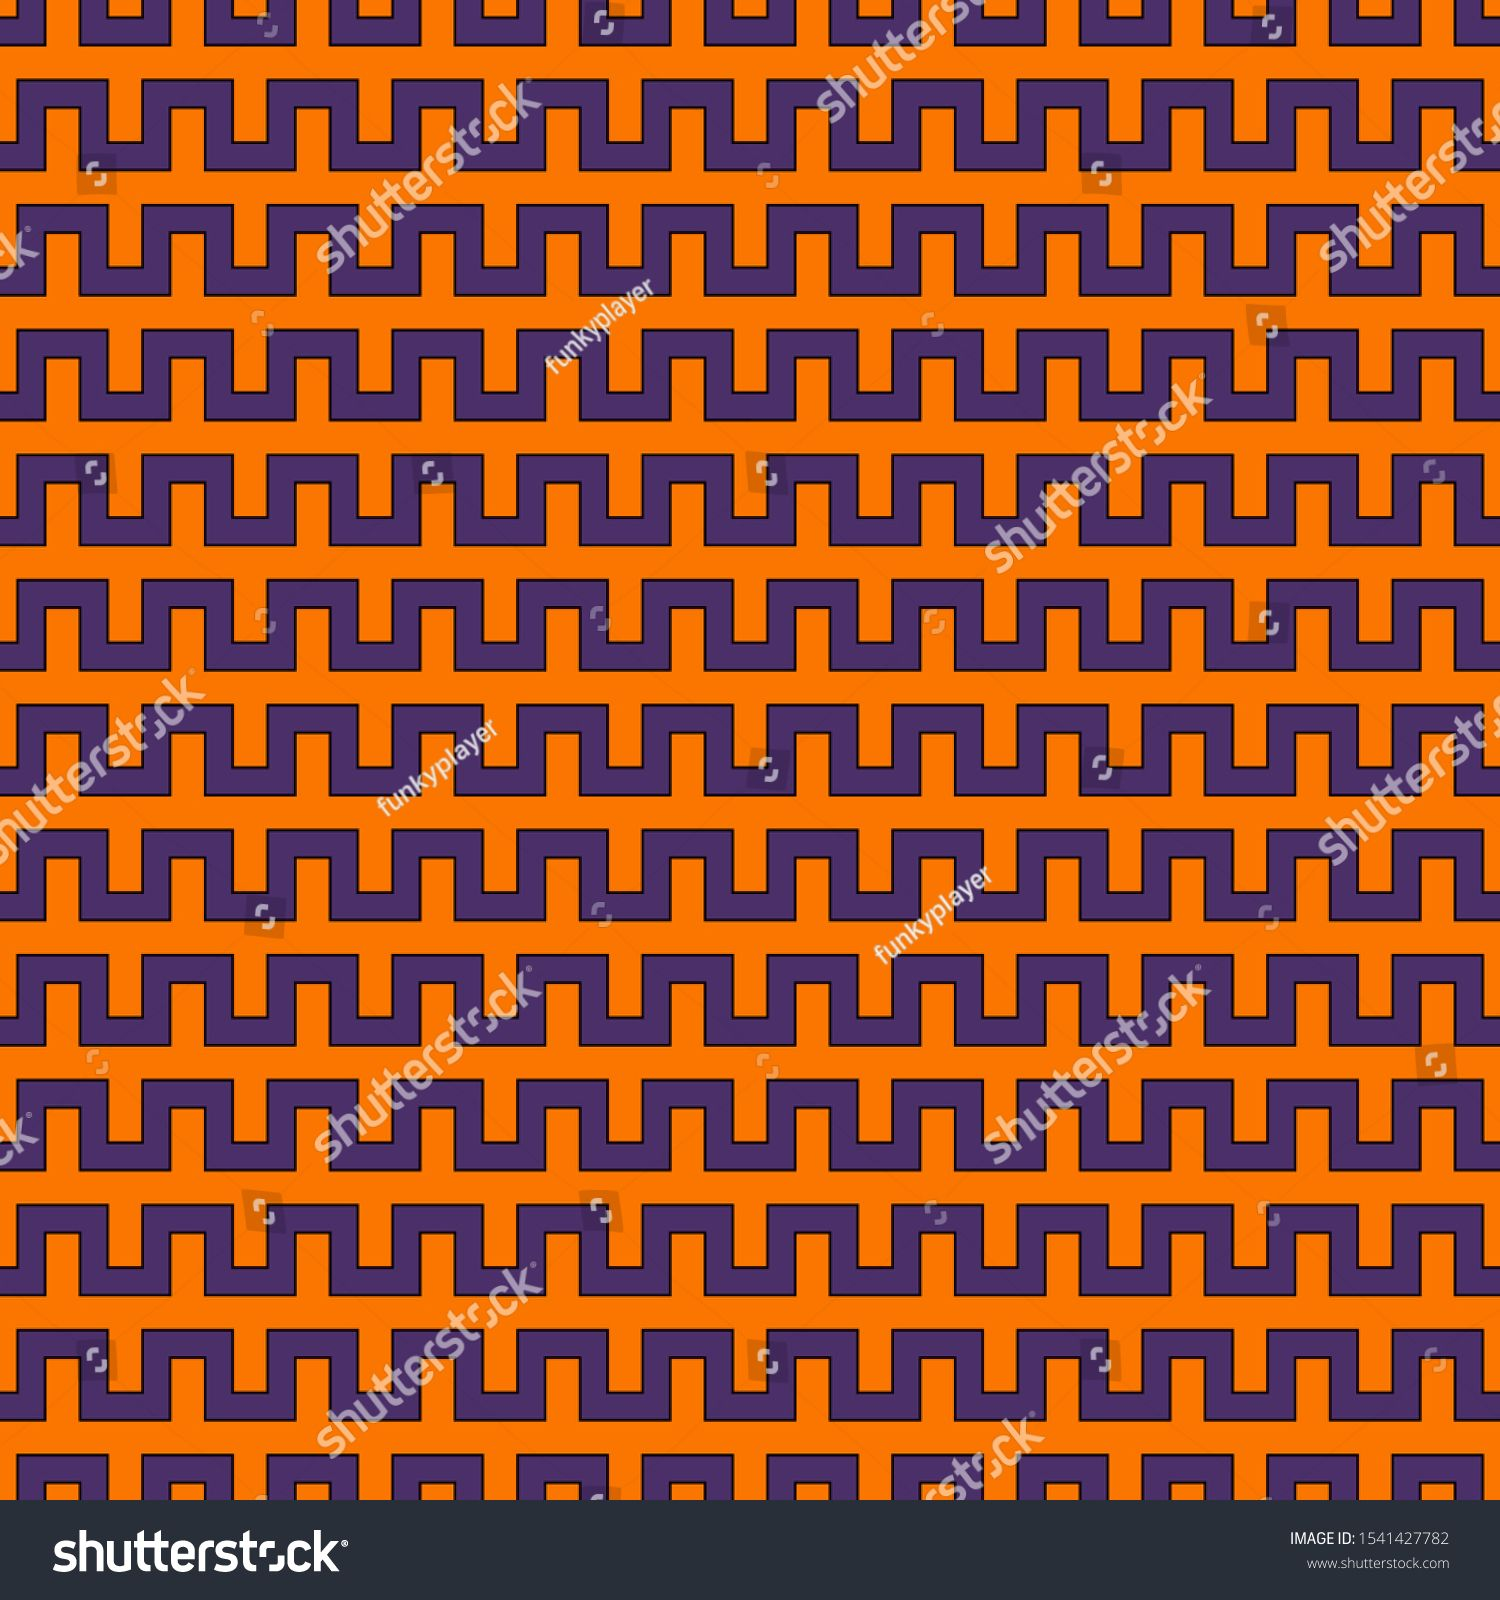 Halloween background. Seamless pattern in holiday traditional colors. Wavy diagonal striped wallpaper. Holiday scrapbook digital paper, textile print, page fill. Vector illustration #Ad , #Sponsored, #colors#traditional#Wavy#striped #halloweenbackgroundswallpapers